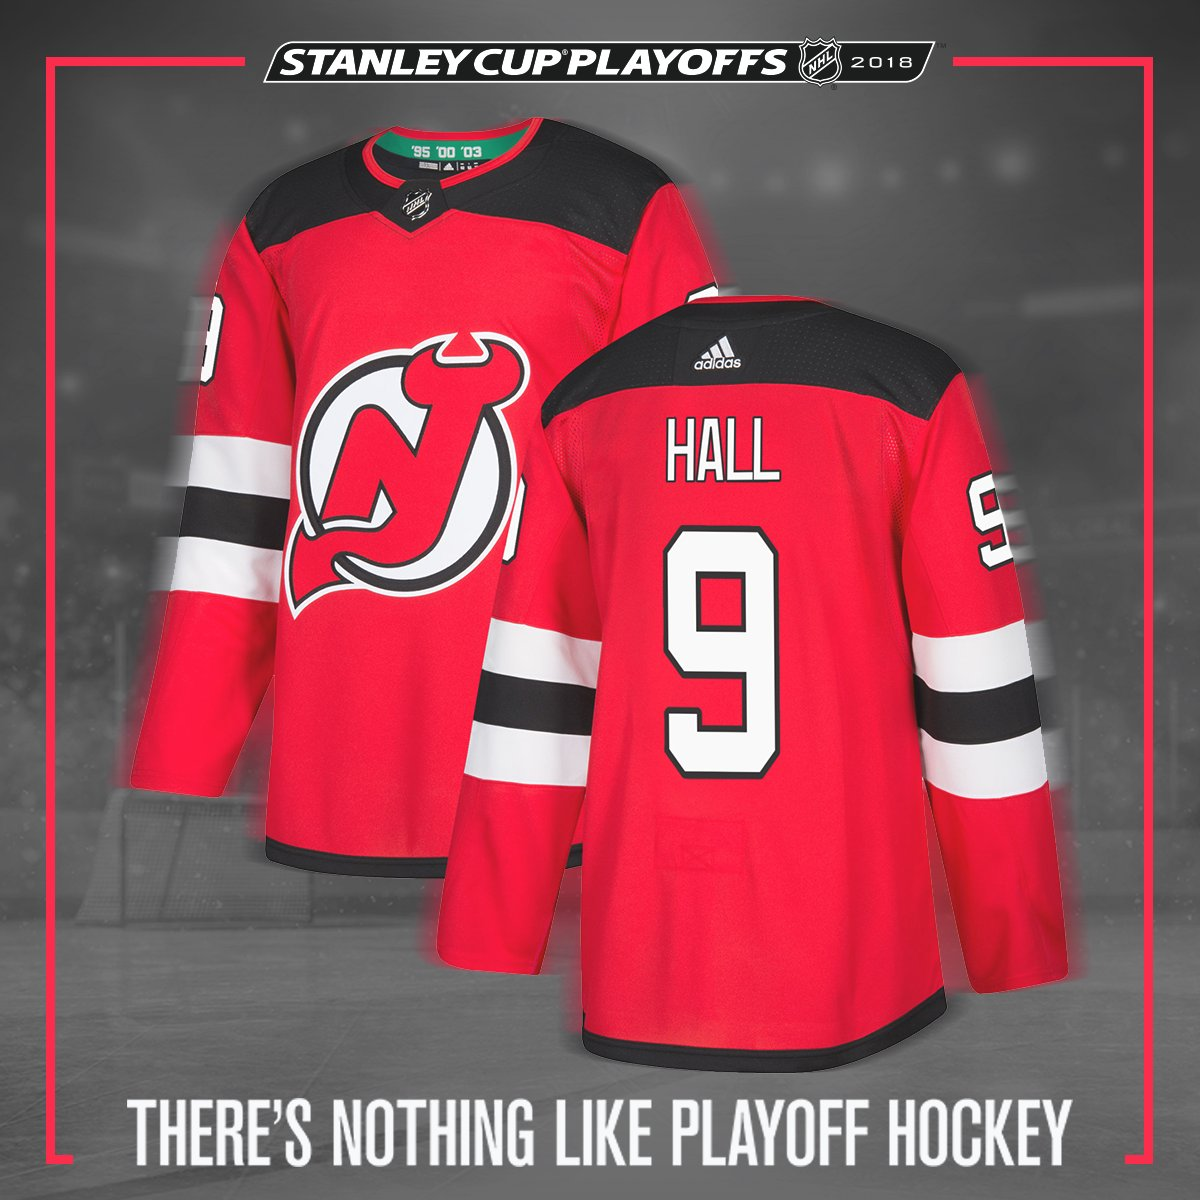 ReTweet this for a chance to win a @hallsy04 jersey! #StanleyCup   There's Nothing Like @NJDevils Playoff Hockey.   #adizero jersey via @adidashockey